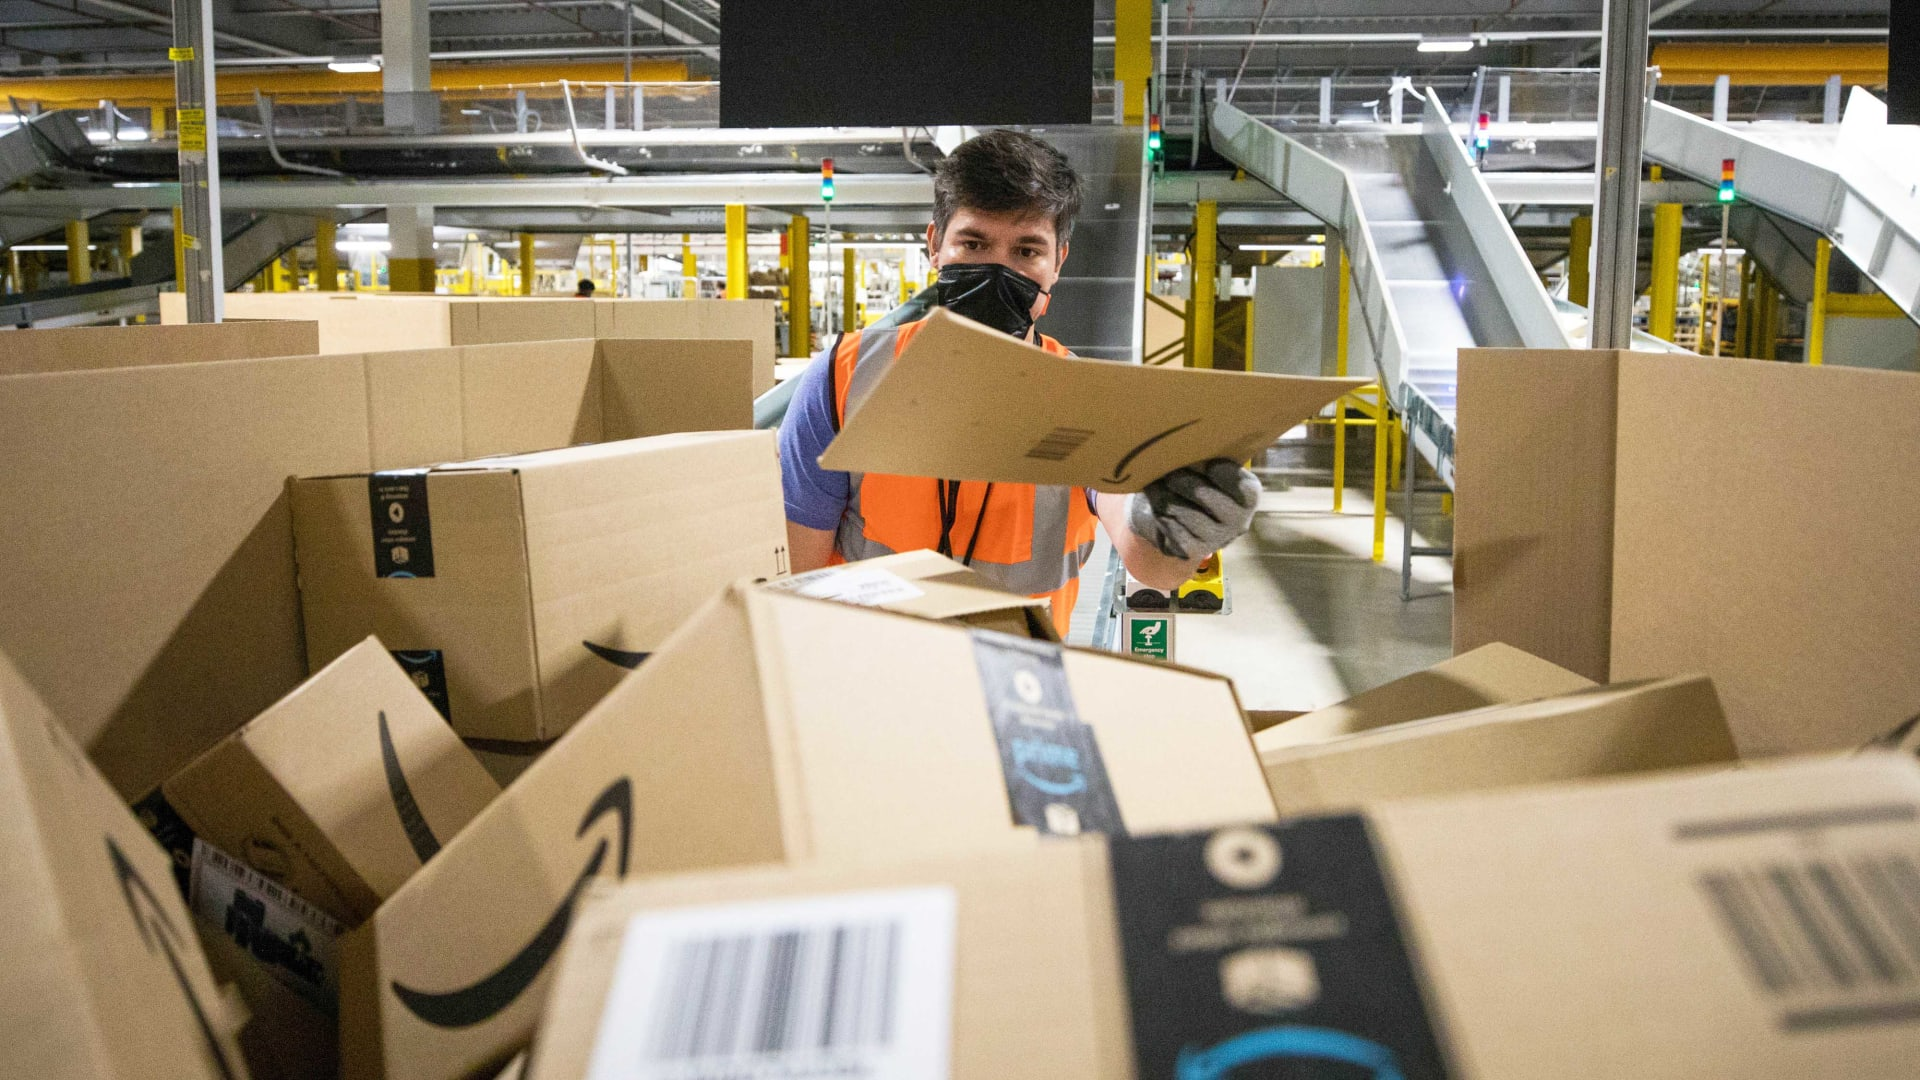 A New Coalition of Small-Business Groups Is Urging Congress to Break Up Amazon